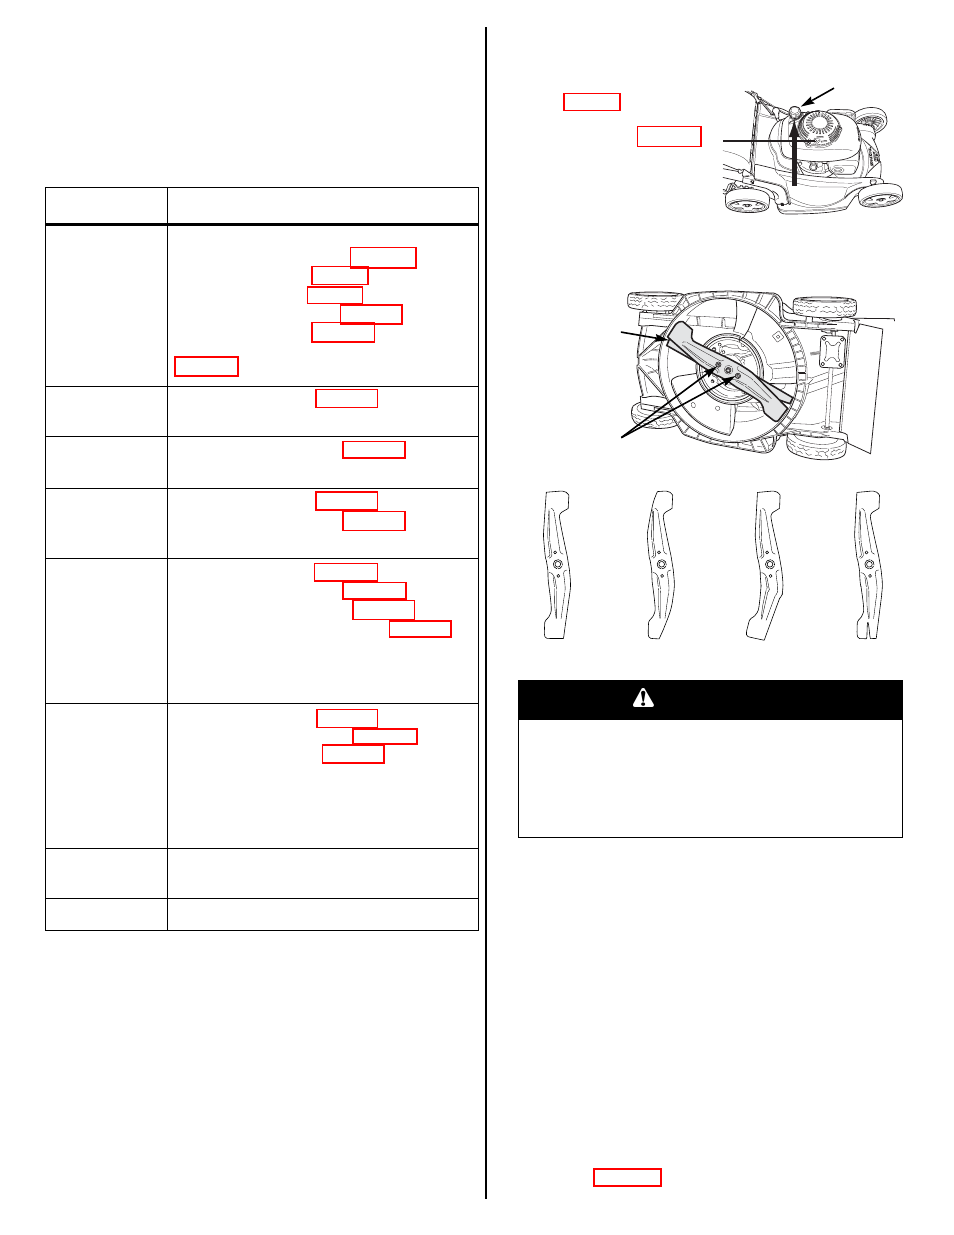 Maintenance schedule, Blades, Warning | HONDA HRX217VKA User Manual | Page  9 / 24